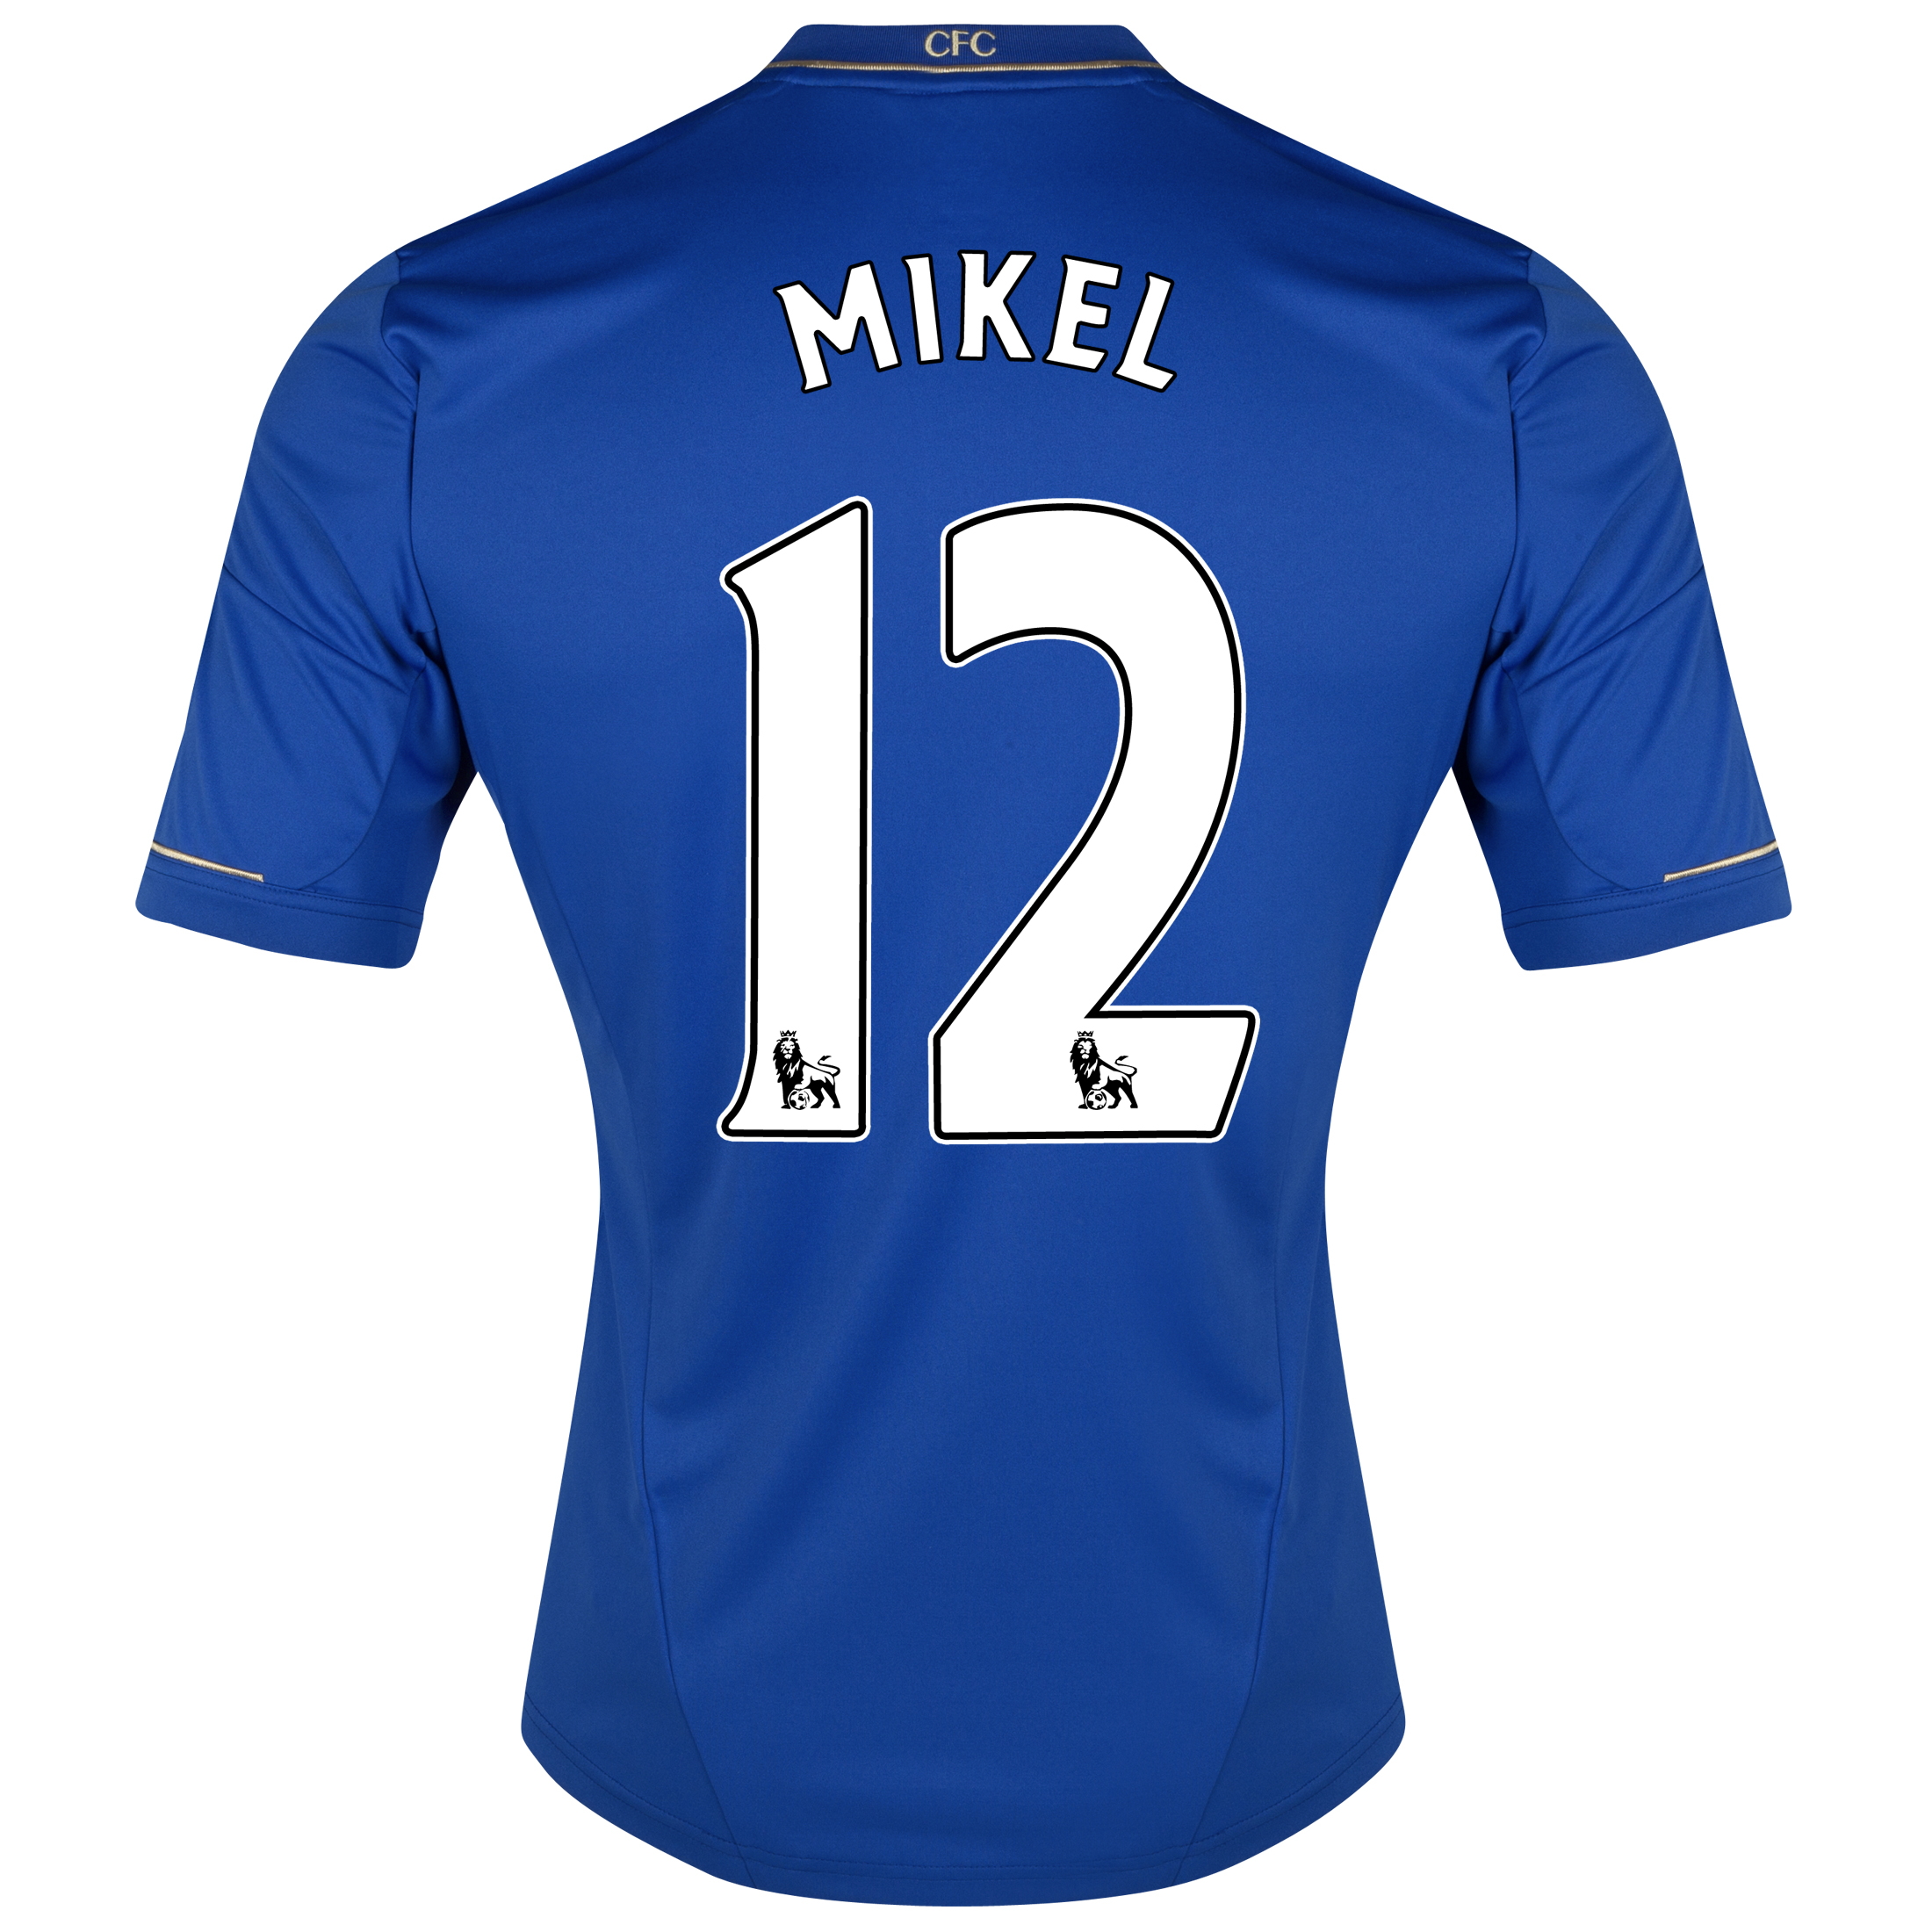 Chelsea Home Shirt 2012/13 with Mikel 12 printing